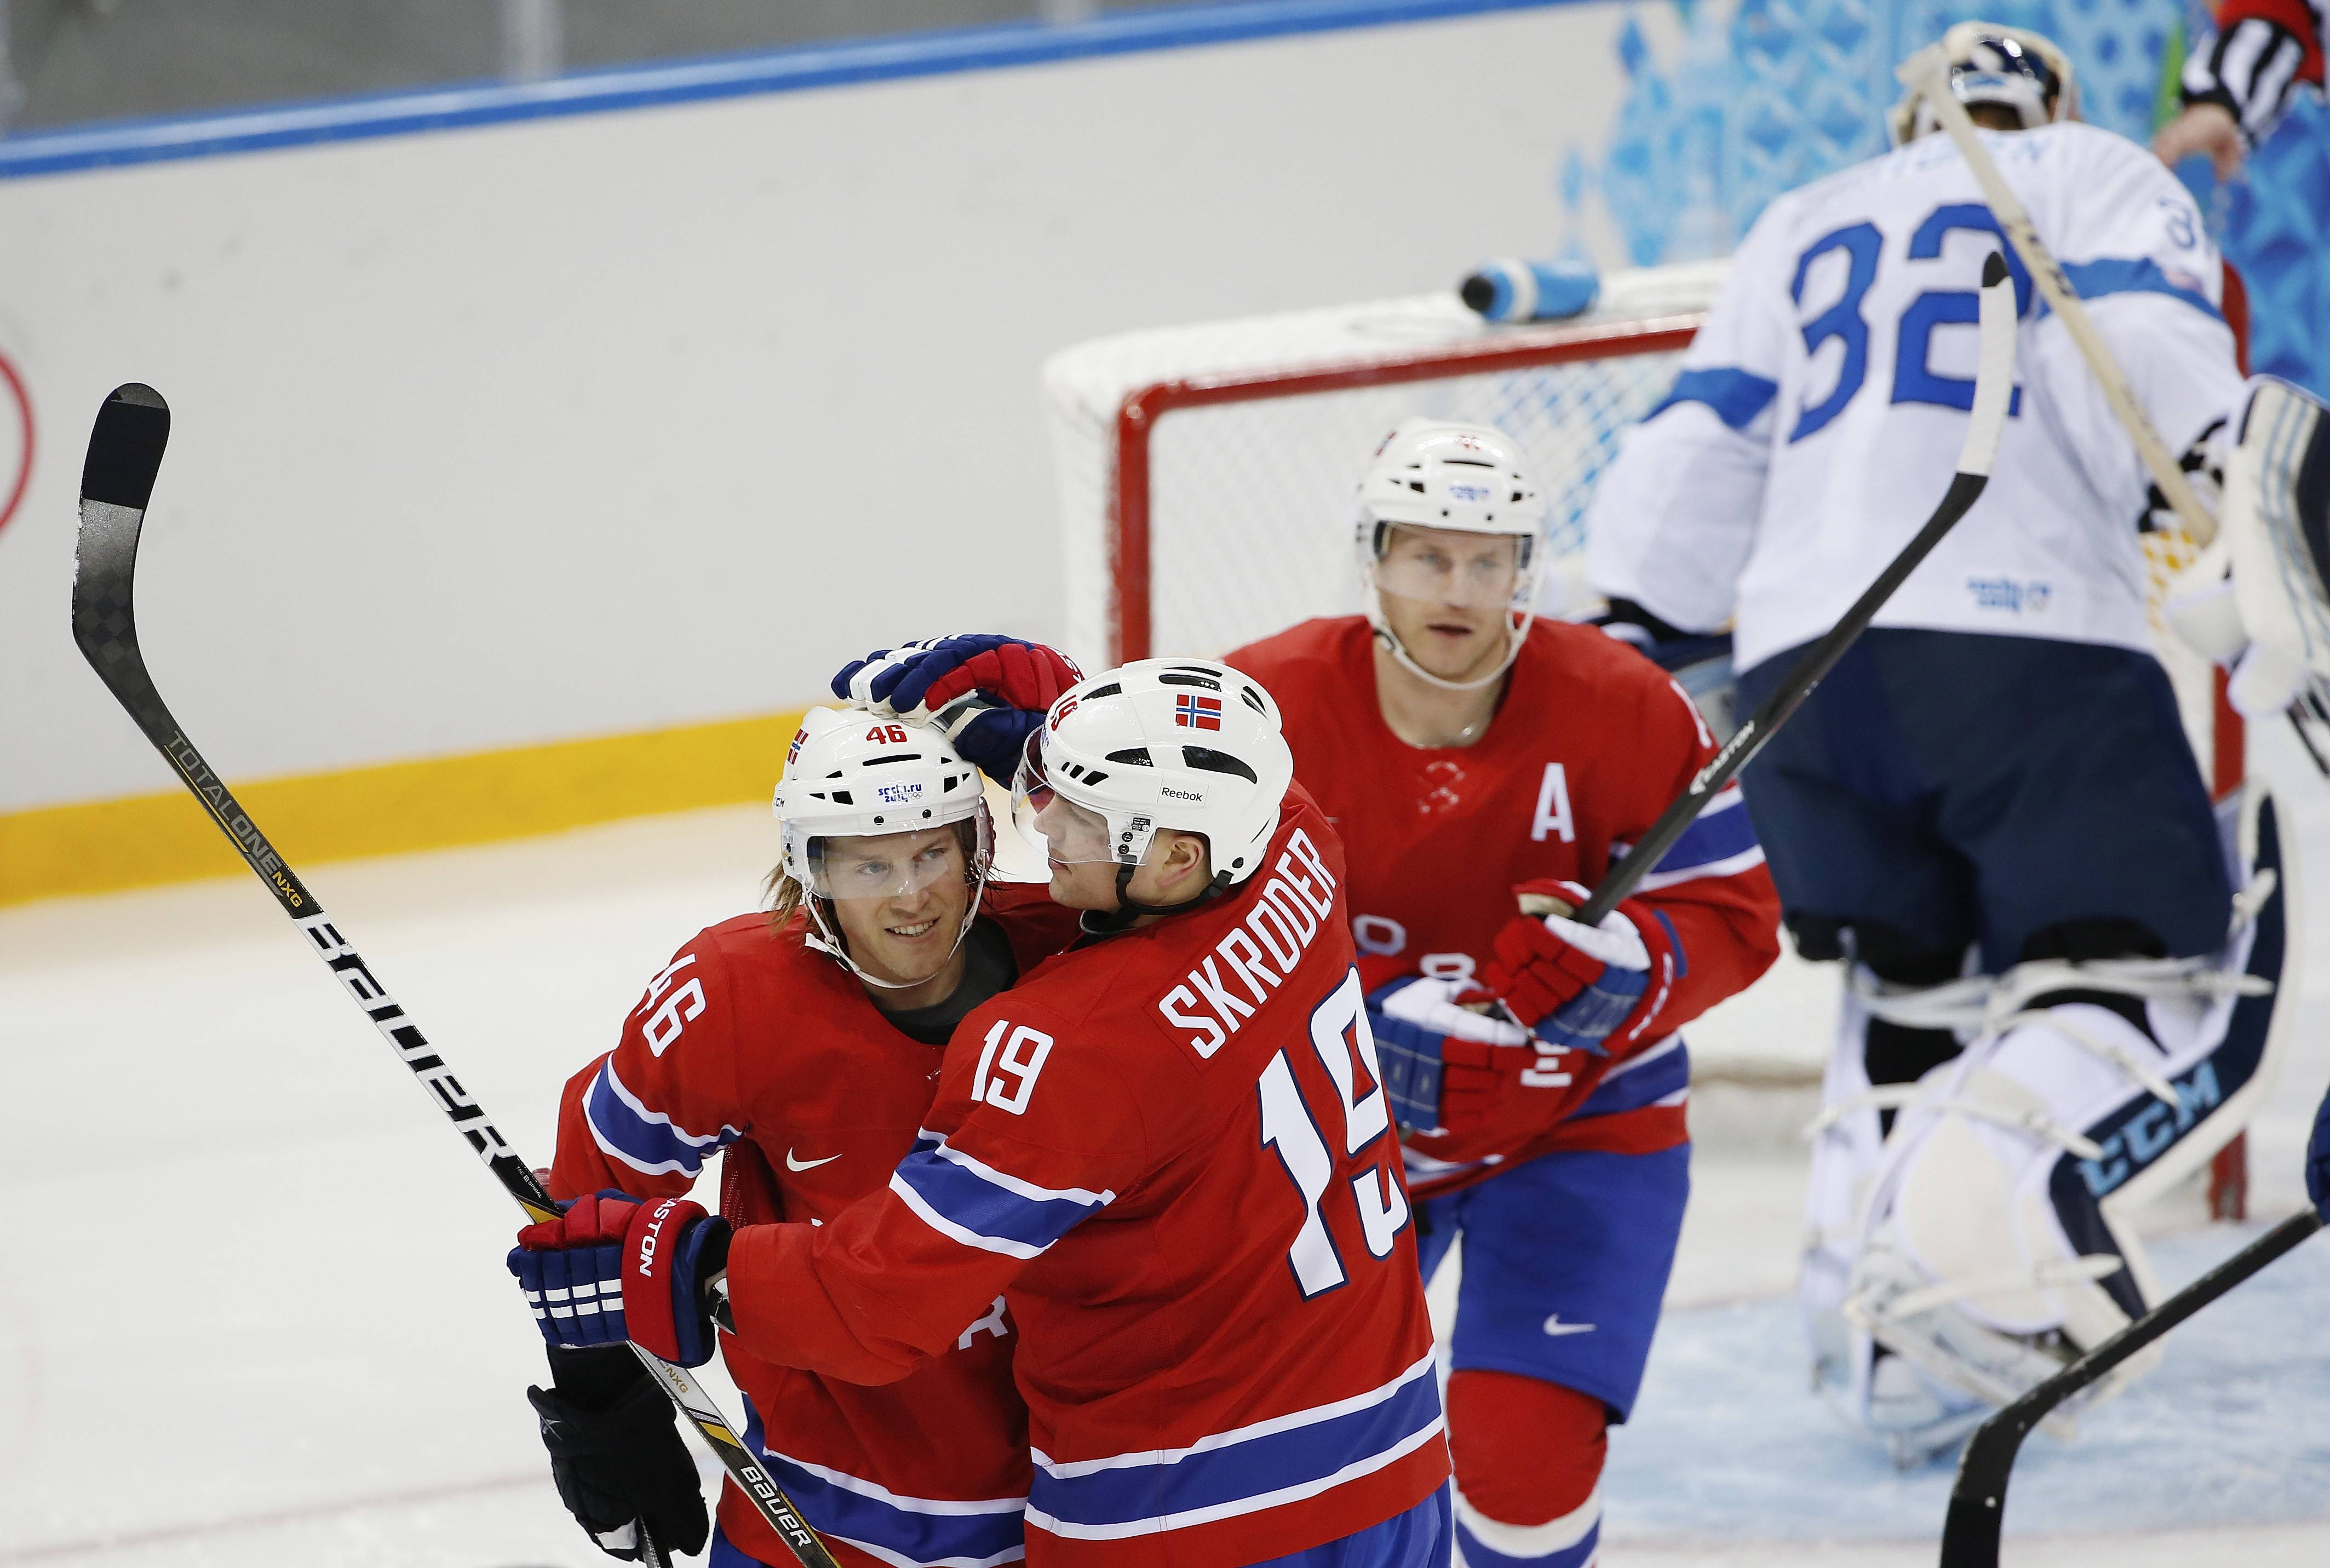 Norway forward Per-Age Skroder celebrates his goal against Finland with teammate Mathis Olimb as Finland goalkeeper Kari Lehtonen skates away.